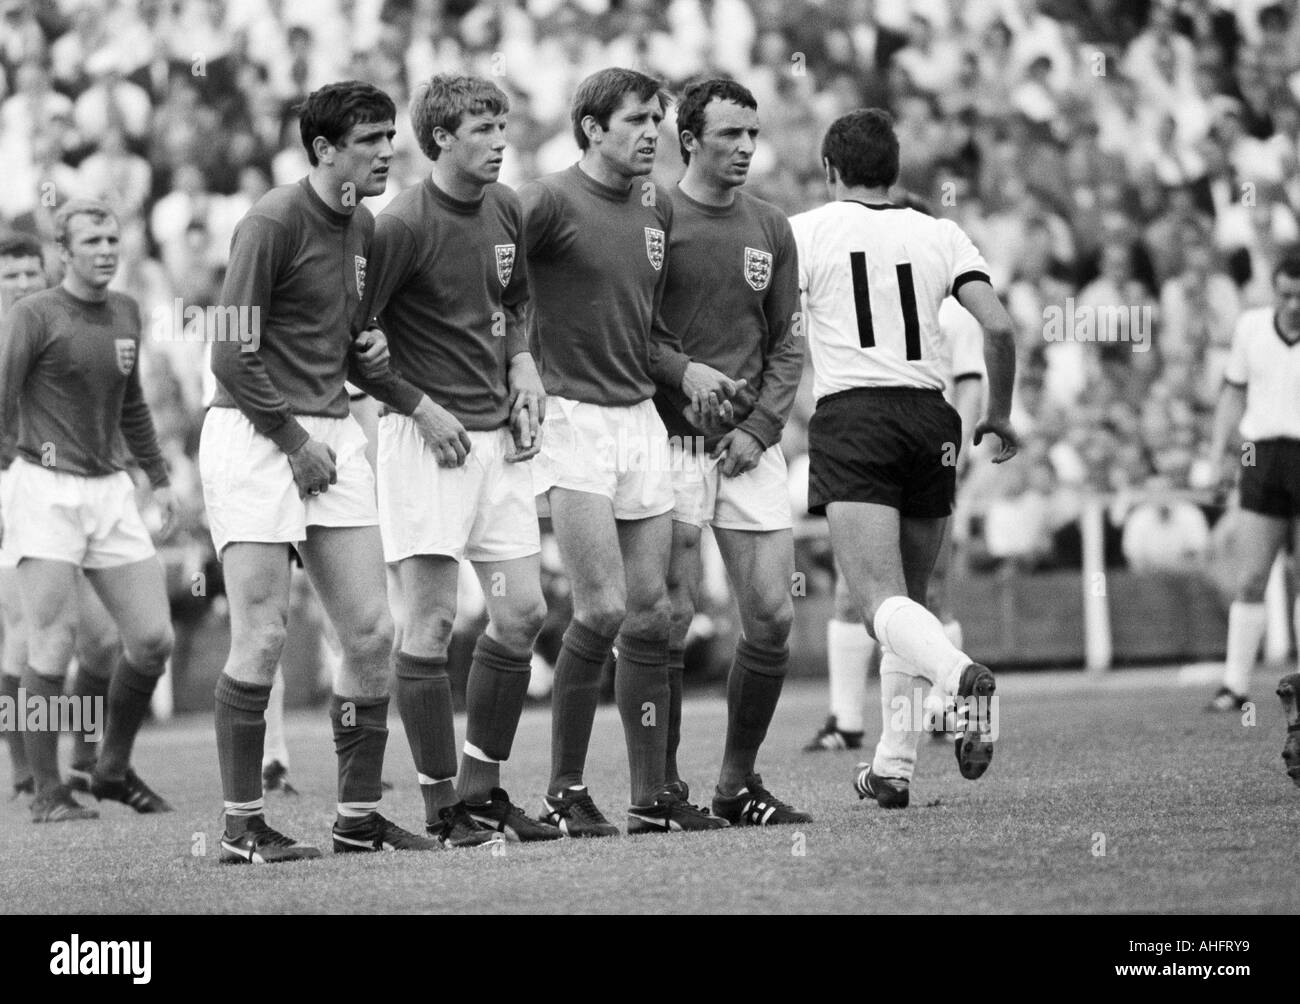 football, international match, 1968, Niedersachsen Stadium in Hanover, Germany versus England 1:0, scene of the match, free kick to Germany, f.l.t.r. Bobby Moore (England), Norman Hunter (England), Colin Bell (England), Keith Newton (England), Mike Summer - Stock Image